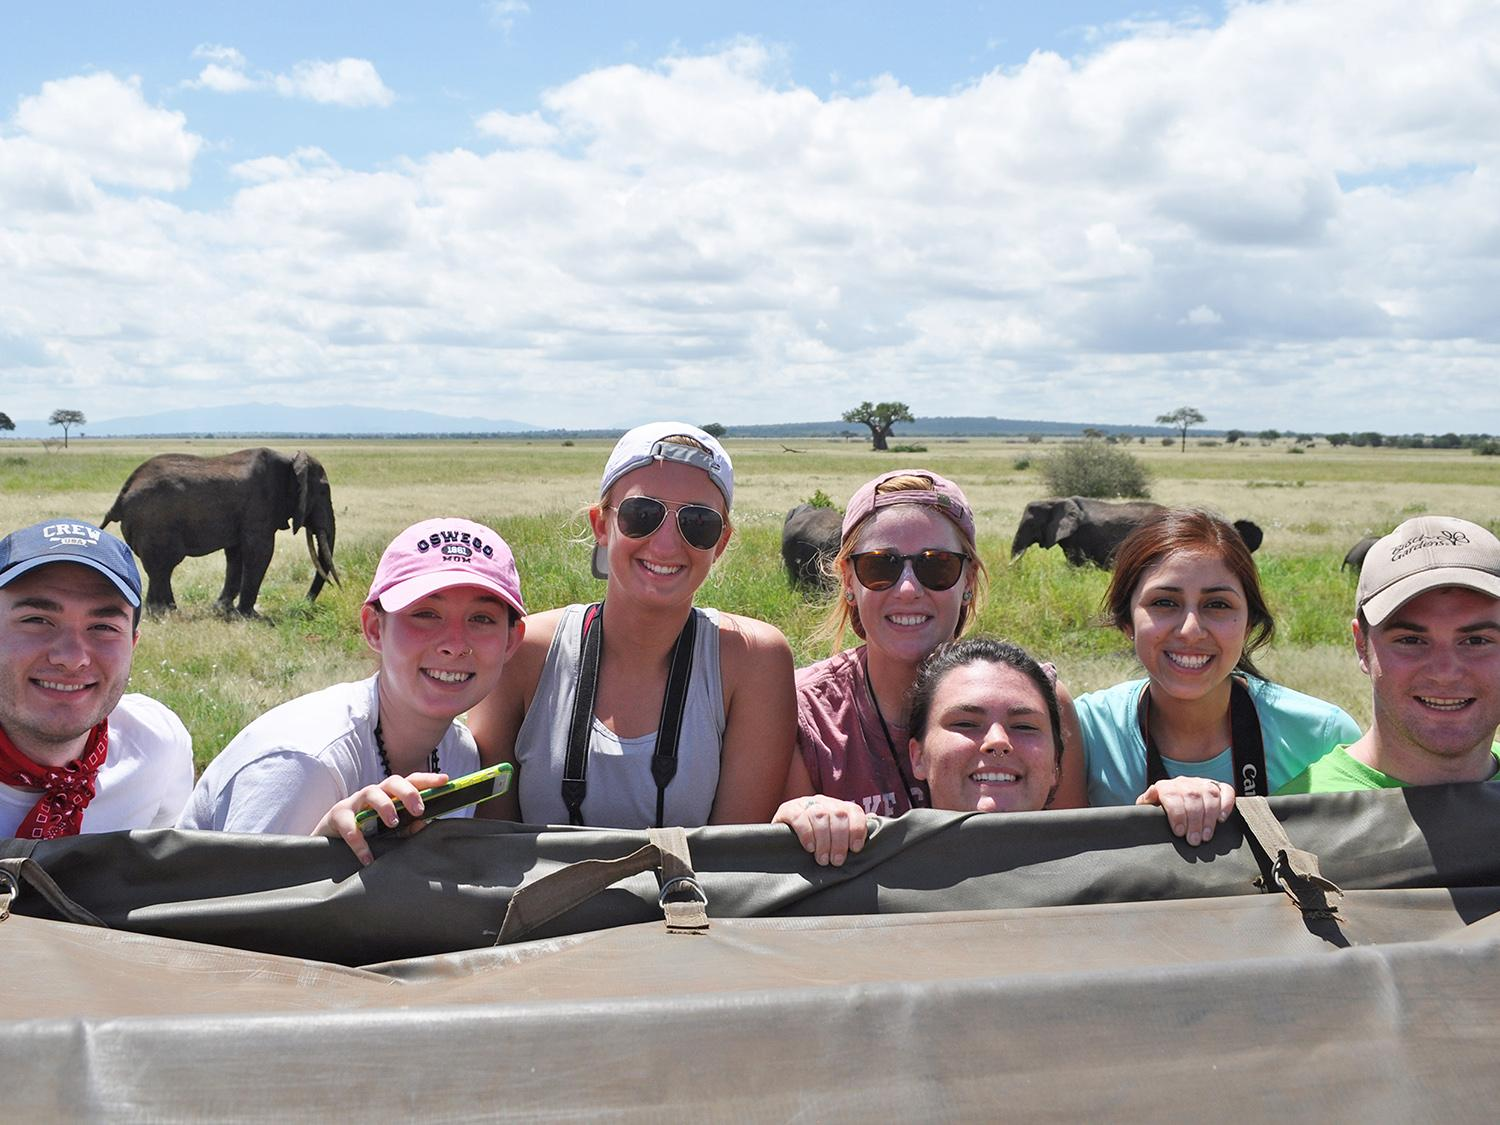 Students pose with elephants in background